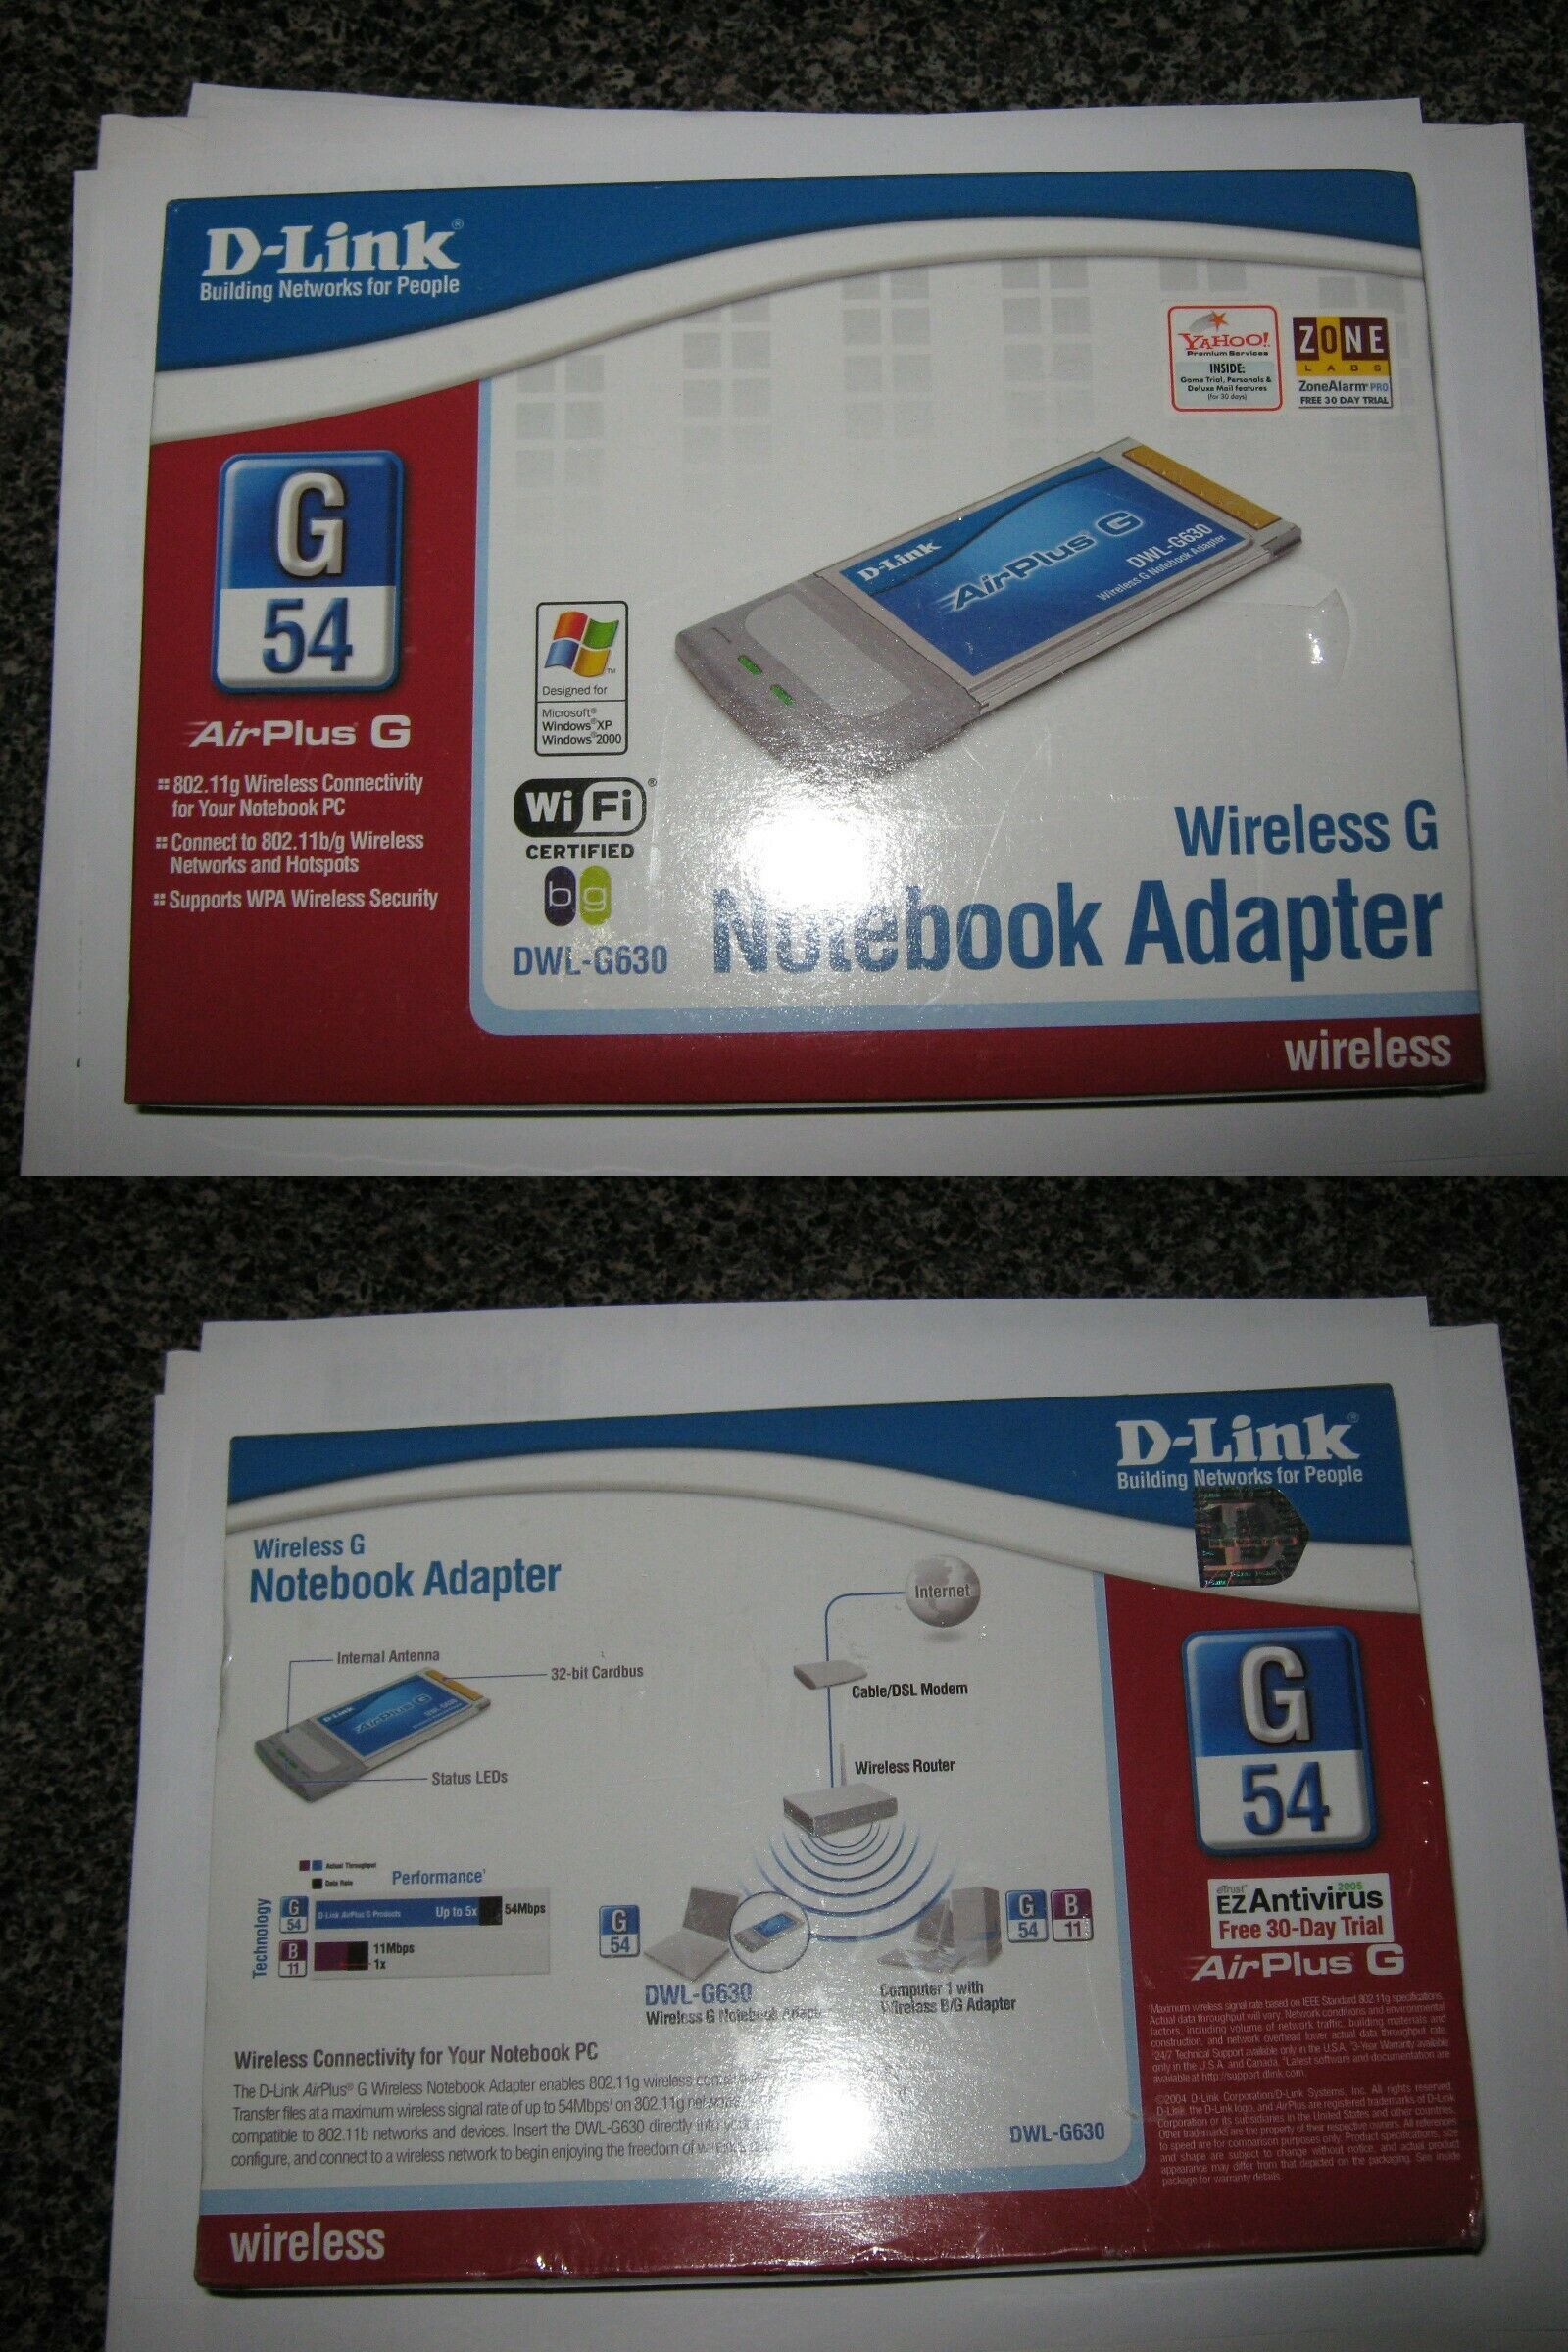 G630 WIRELESS G NOTEBOOK ADAPTER WINDOWS 7 X64 DRIVER DOWNLOAD